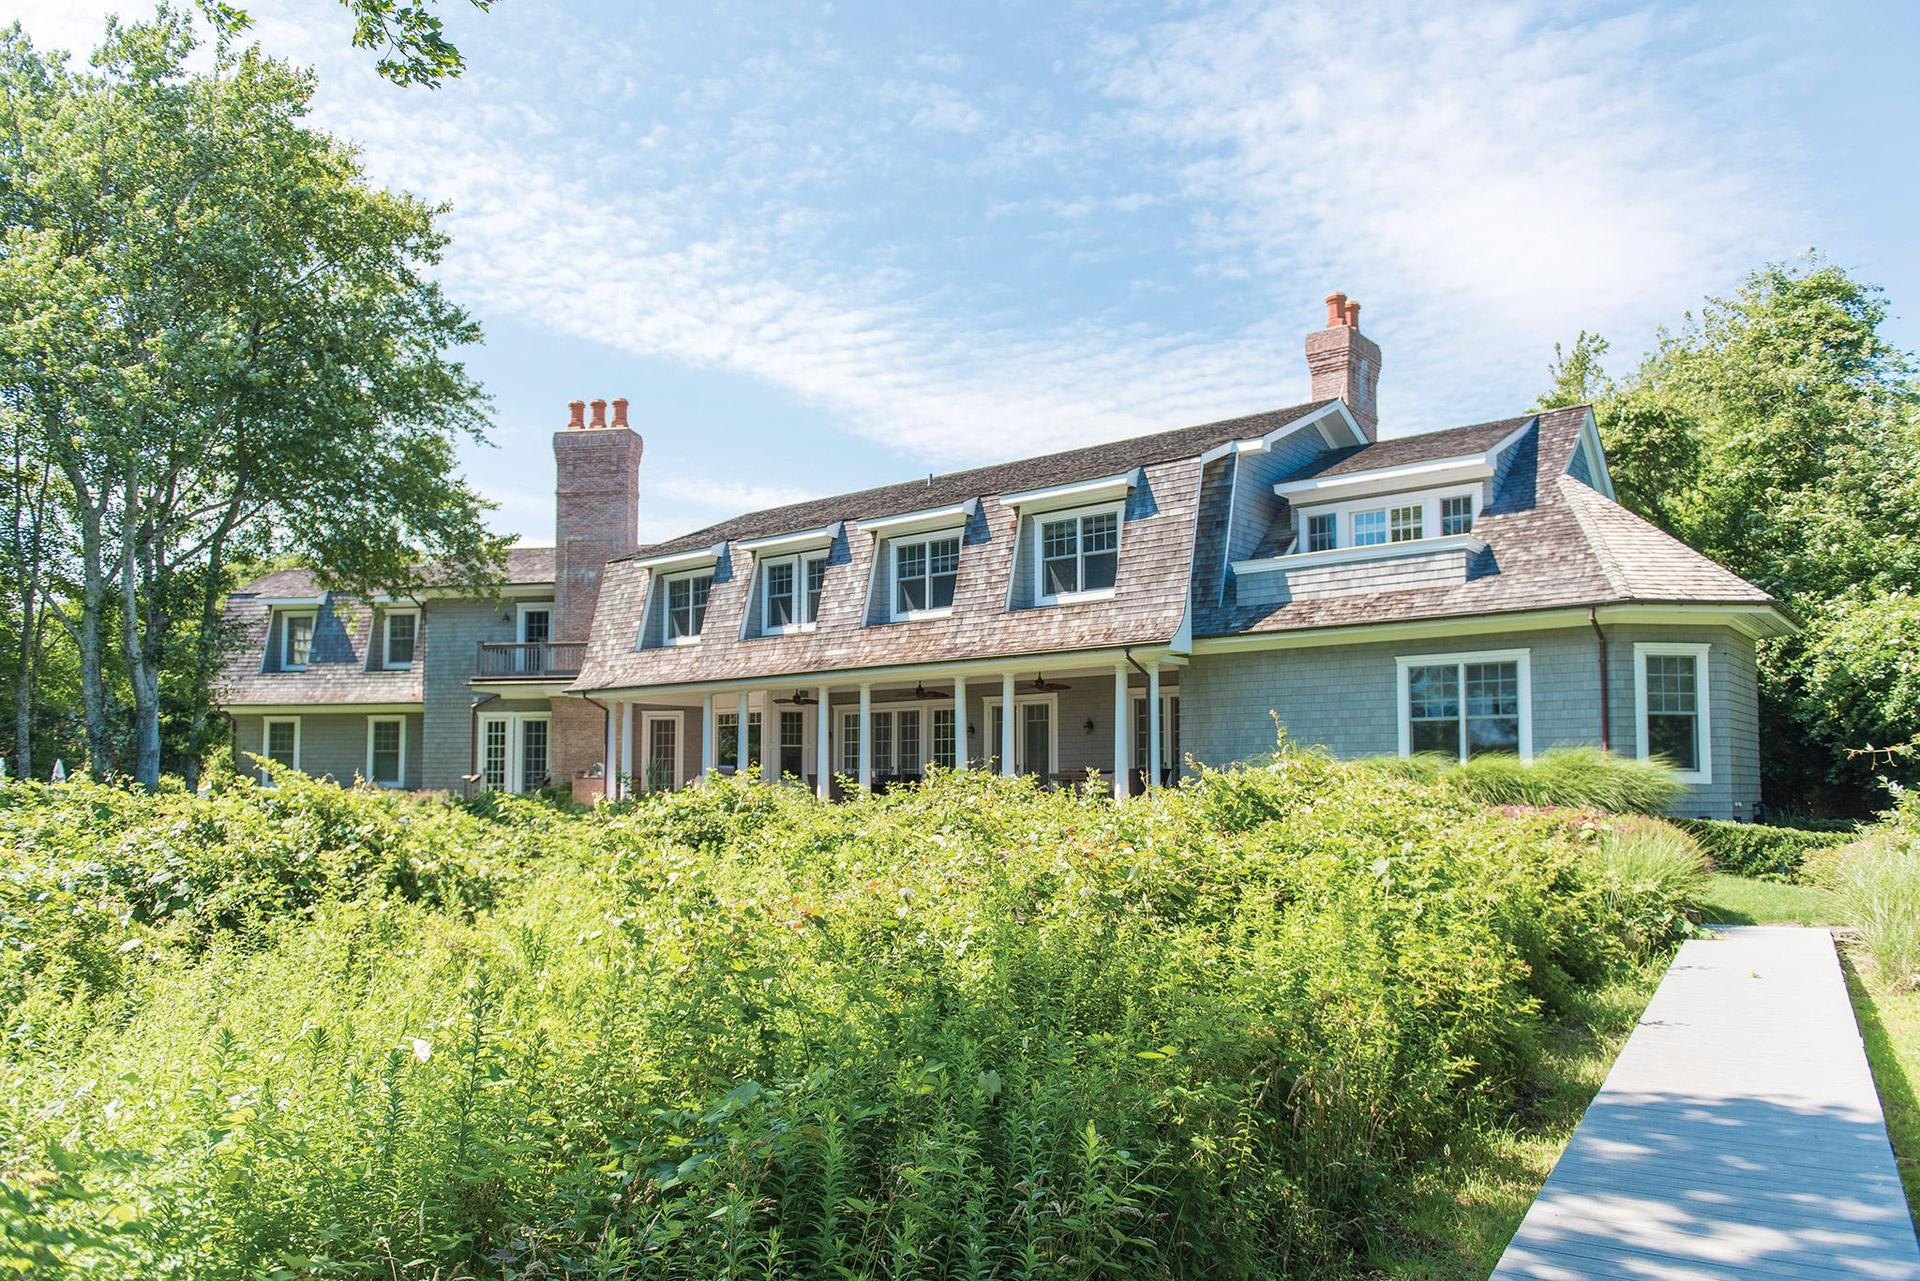 Single Family Home for Sale at Waterfront With Dock In Sagaponack South Sagaponack, New York